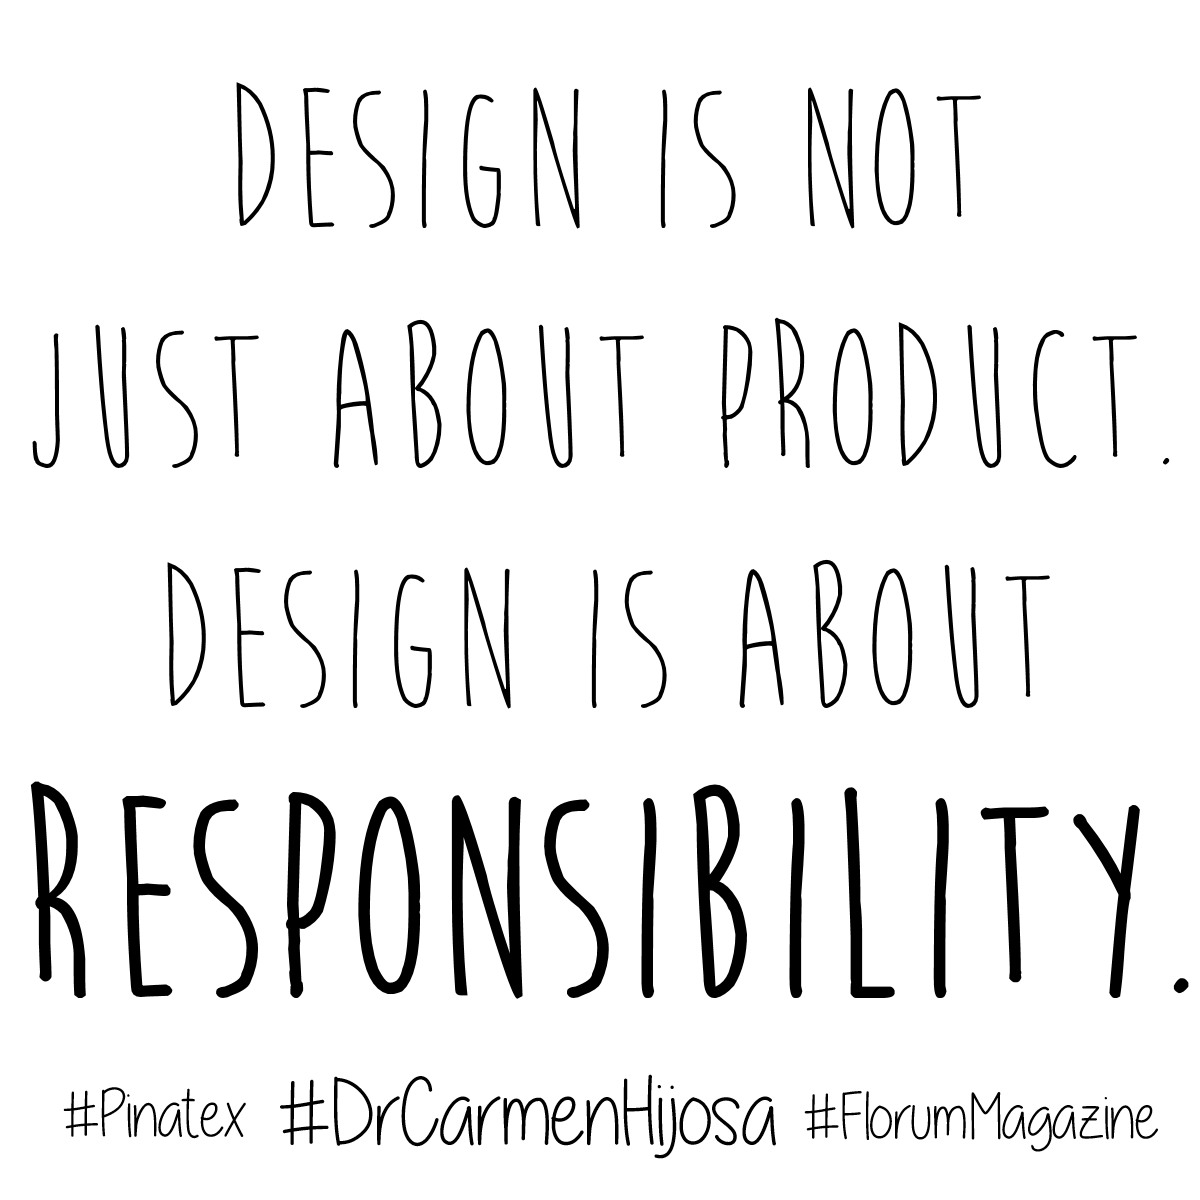 sustainable fashion quotes  Consume with a conscious -  florum fashion magazine - noelle lynne pinatex pineapple vegan leather  Design is not just about the product design is about responsibilty Dr Carmen Hijosa.jpg